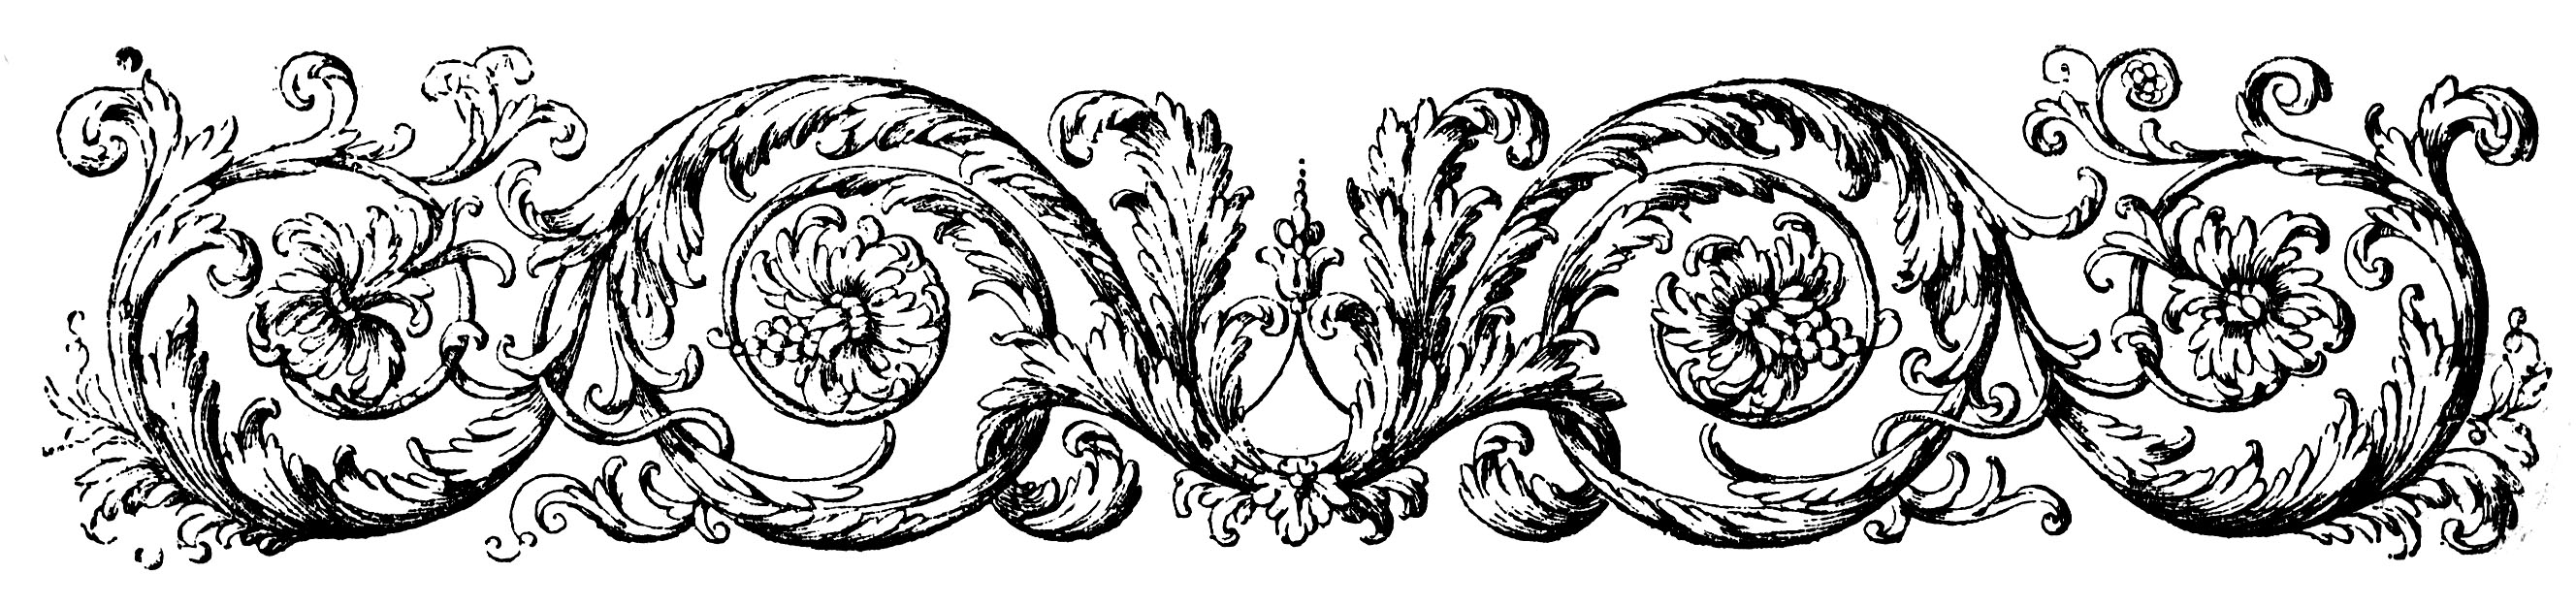 Antique Flourish